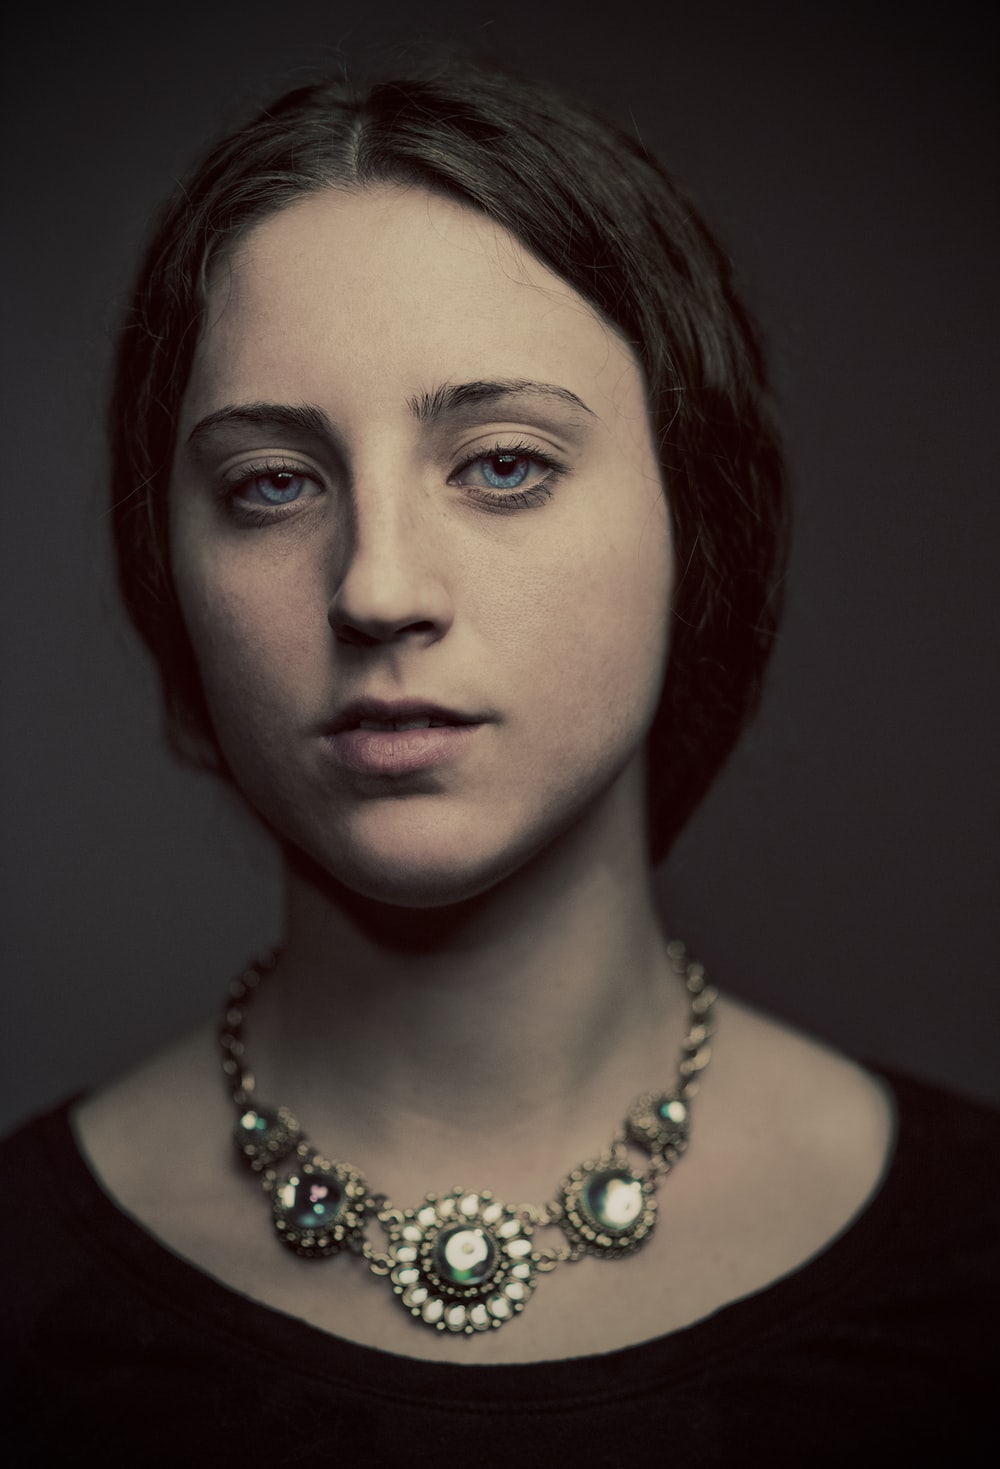 portrait photography of woman in black top